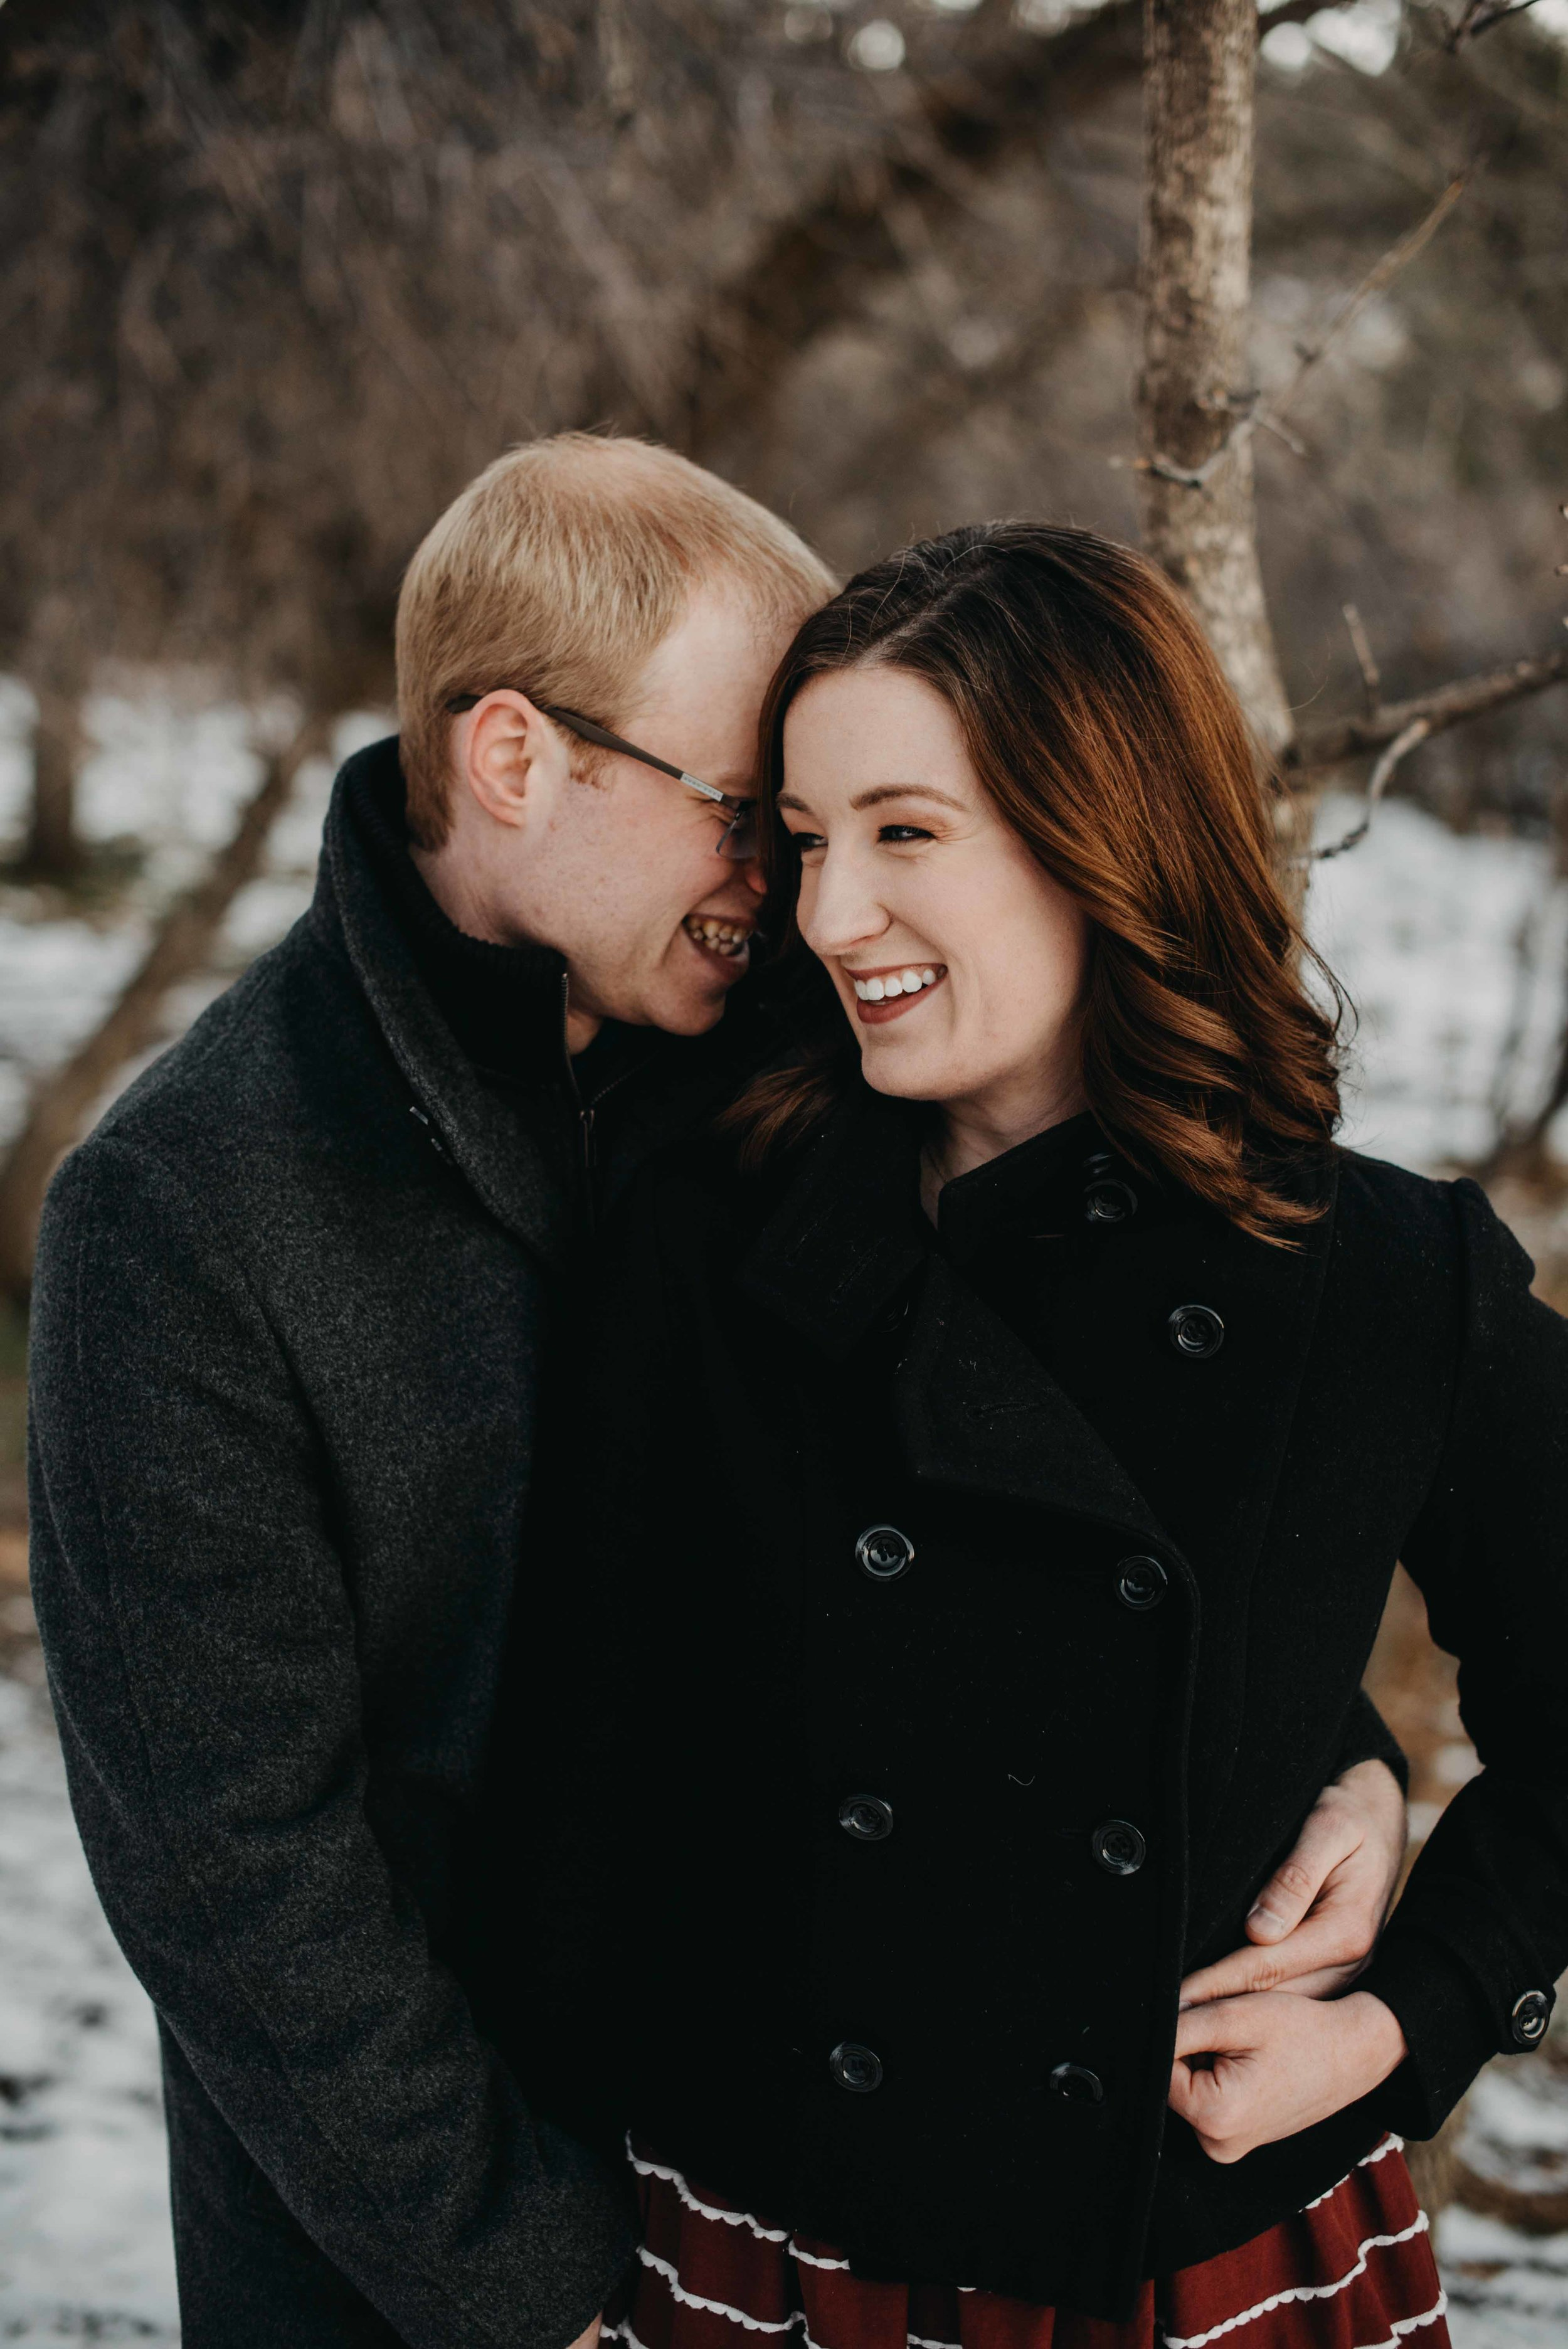 Peter hugging Trinity during their snowy engagement session in Boulder, Colorado. We met in Chautauqua for some fun hiking in the snow photos.